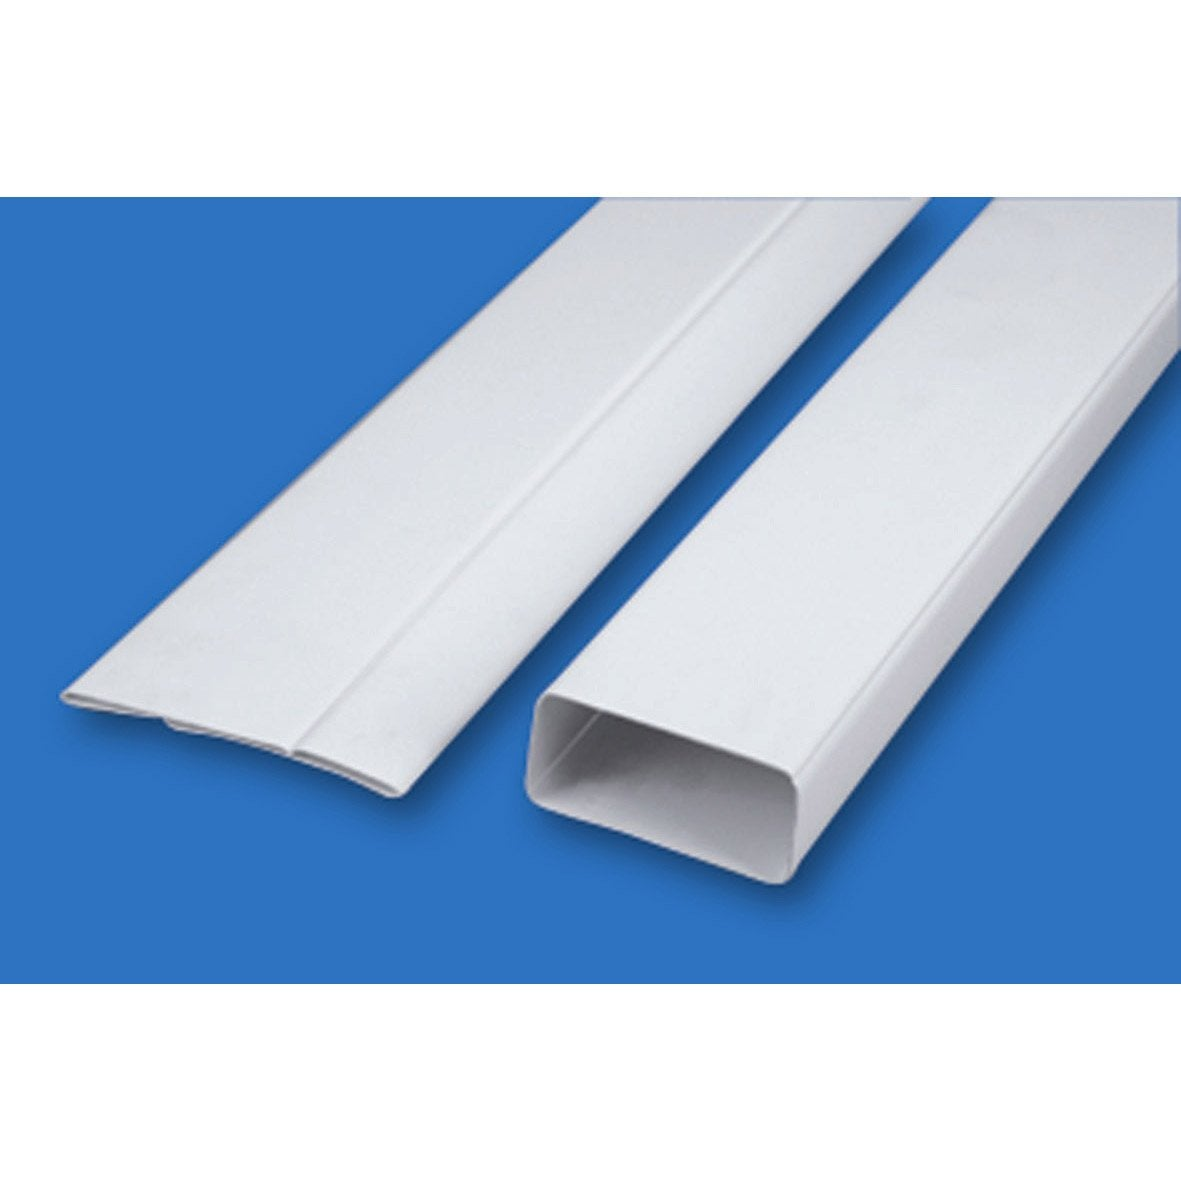 Tube rectangulaire rigide plat pvc s p mm l for Bassin pvc rectangulaire